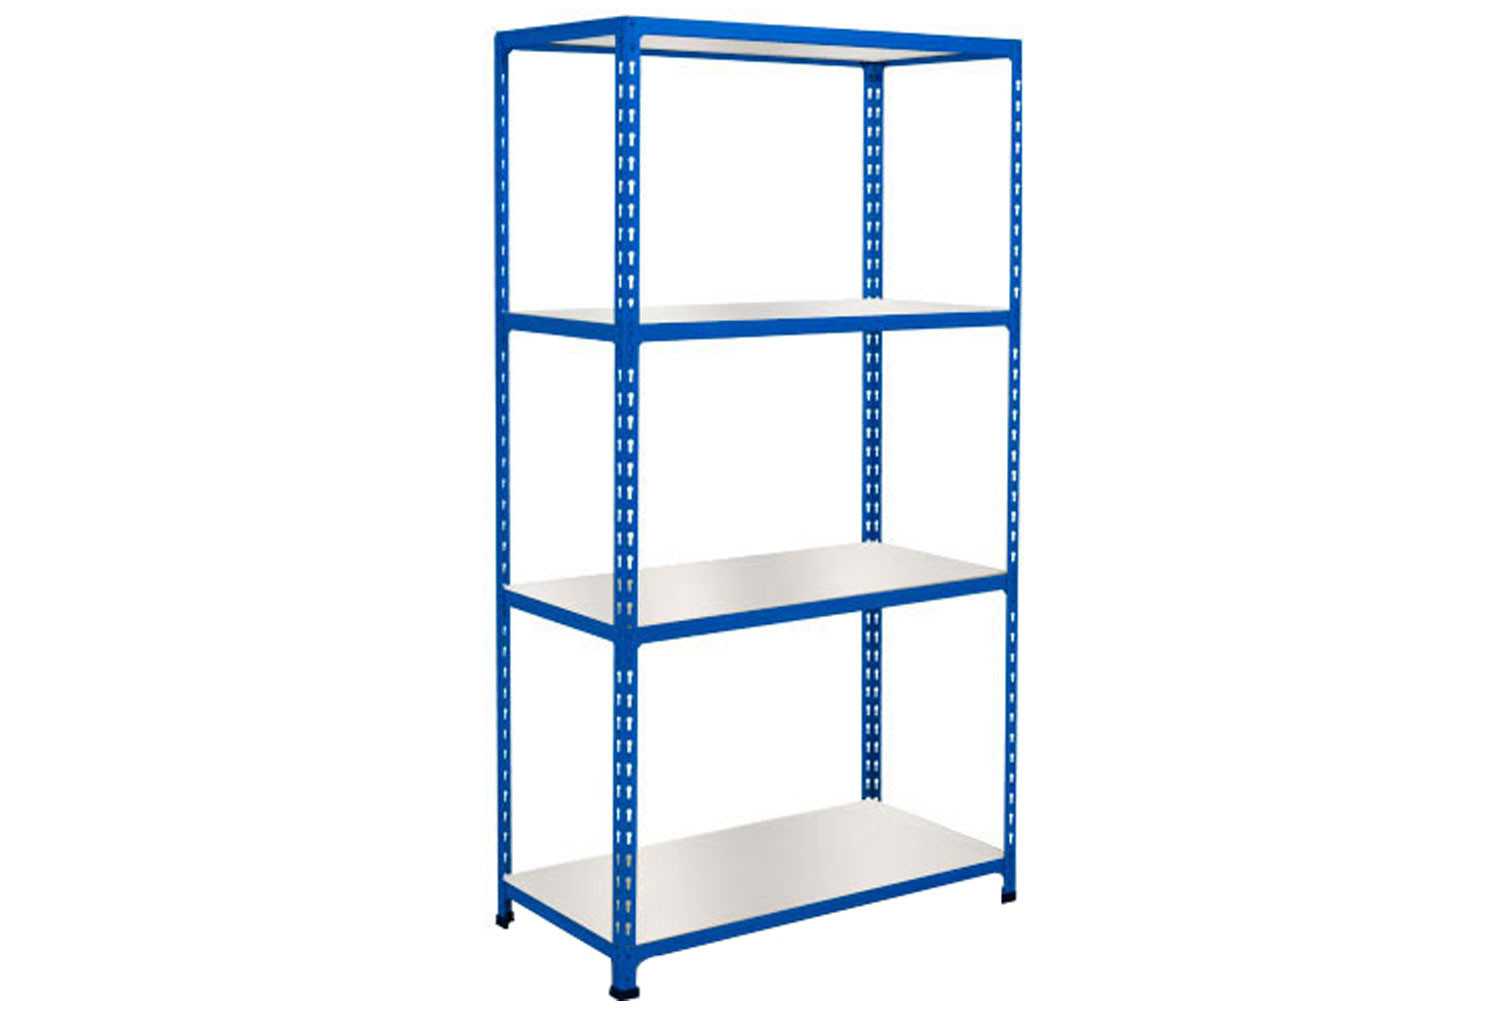 Rapid 2 Shelving With 4 Melamine Shelves 915wx1600h (Blue)